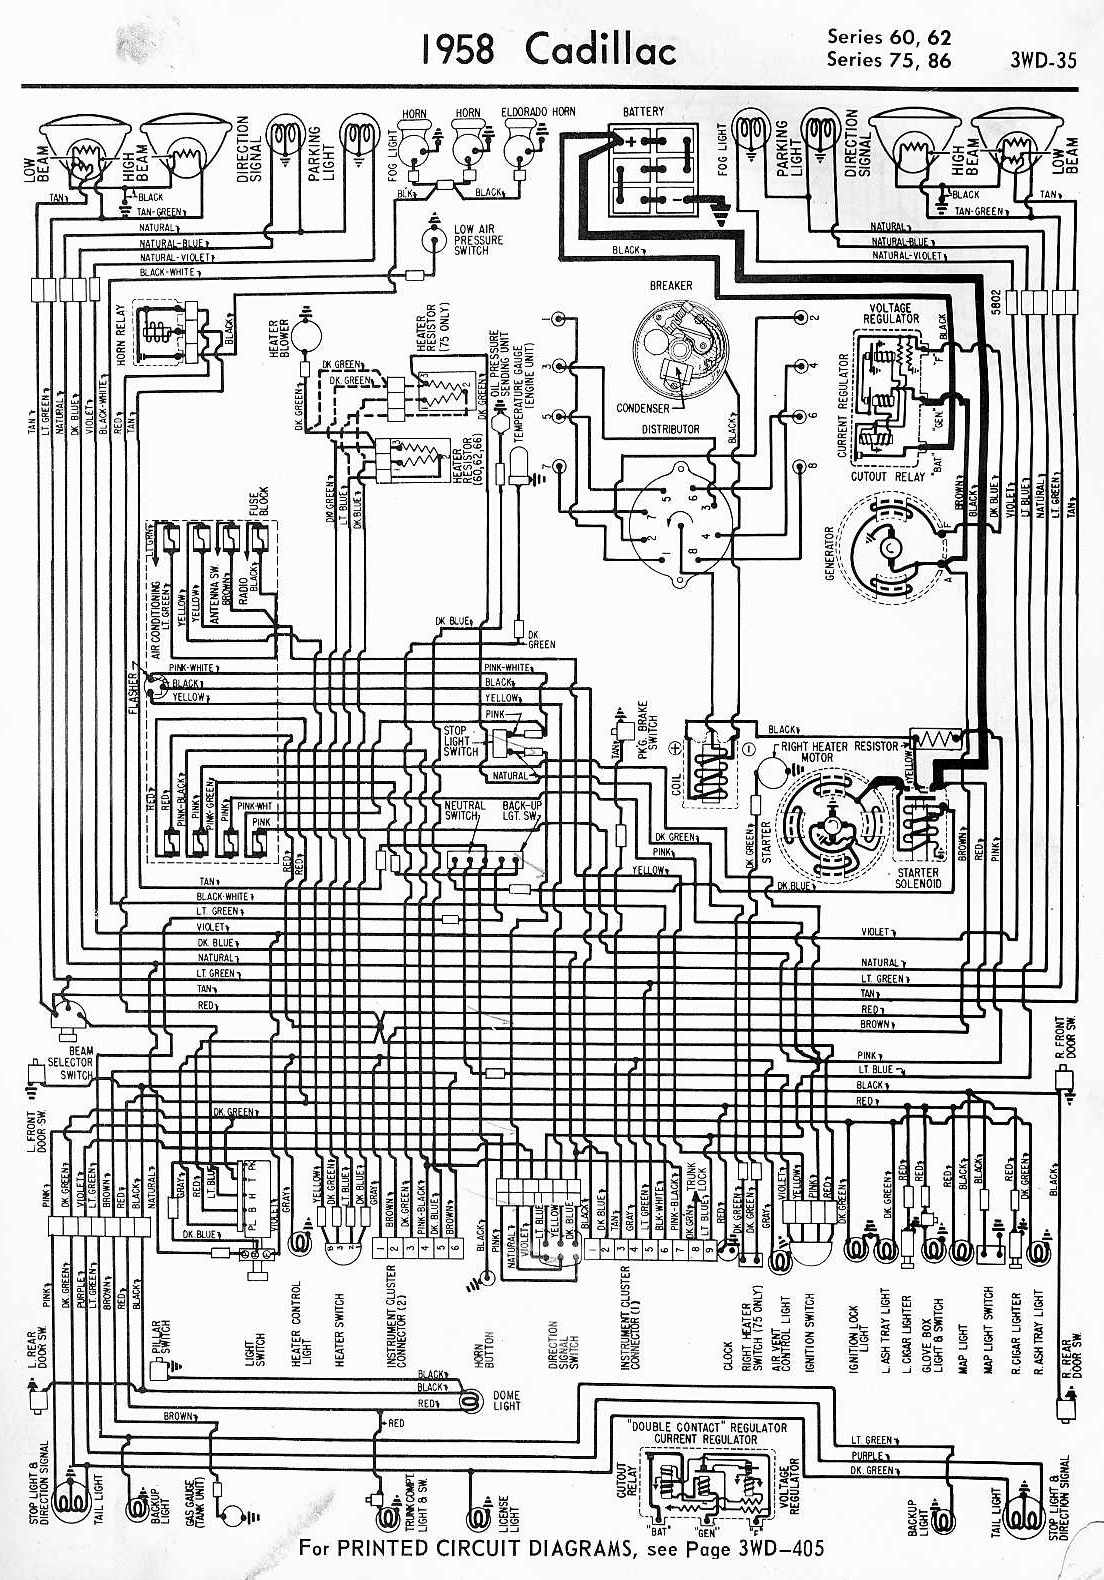 Cadillac Car Manuals Wiring Diagrams Pdf Fault Codes 2004 Jaguar 4 2 Engine Diagram Download